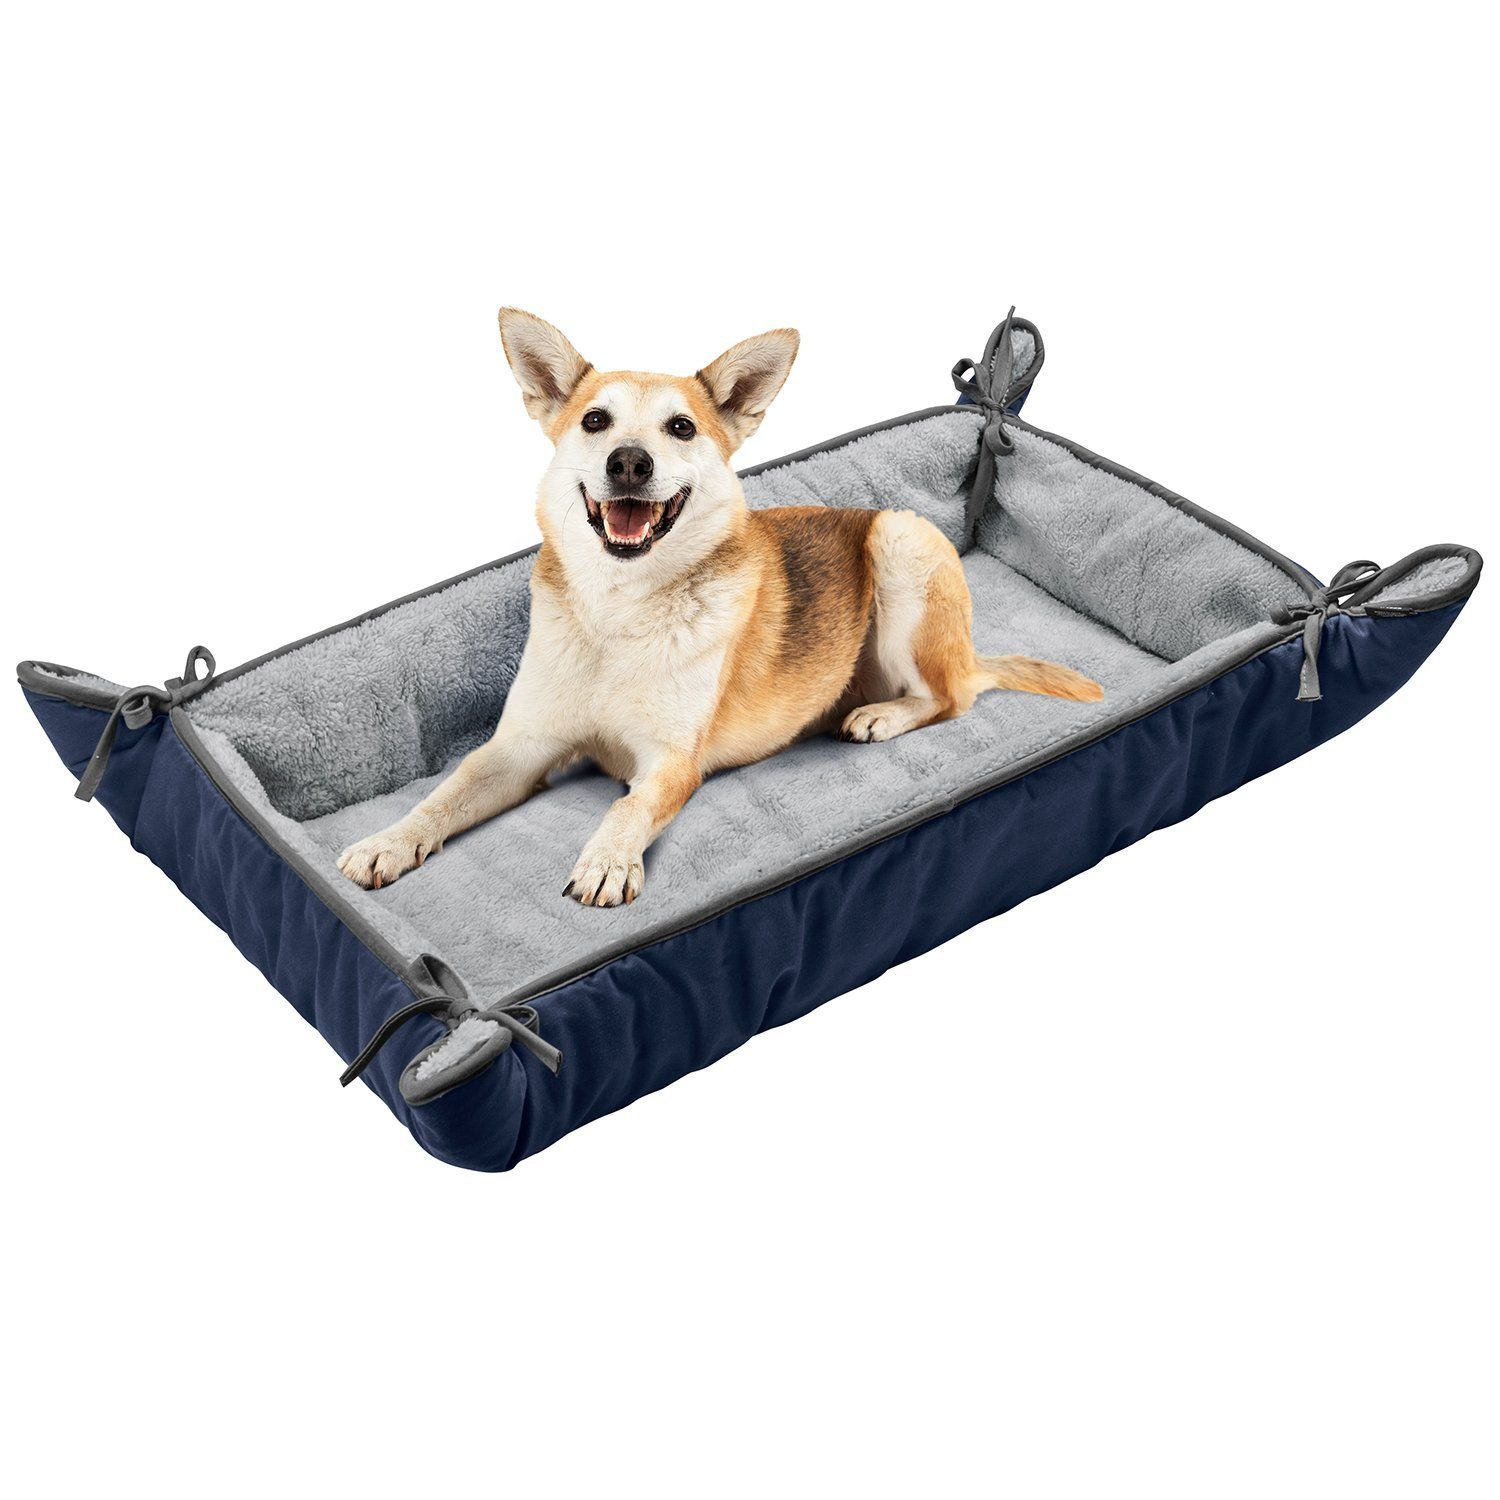 Big deal and up to 15 off on selected Passwe Dog Bed for